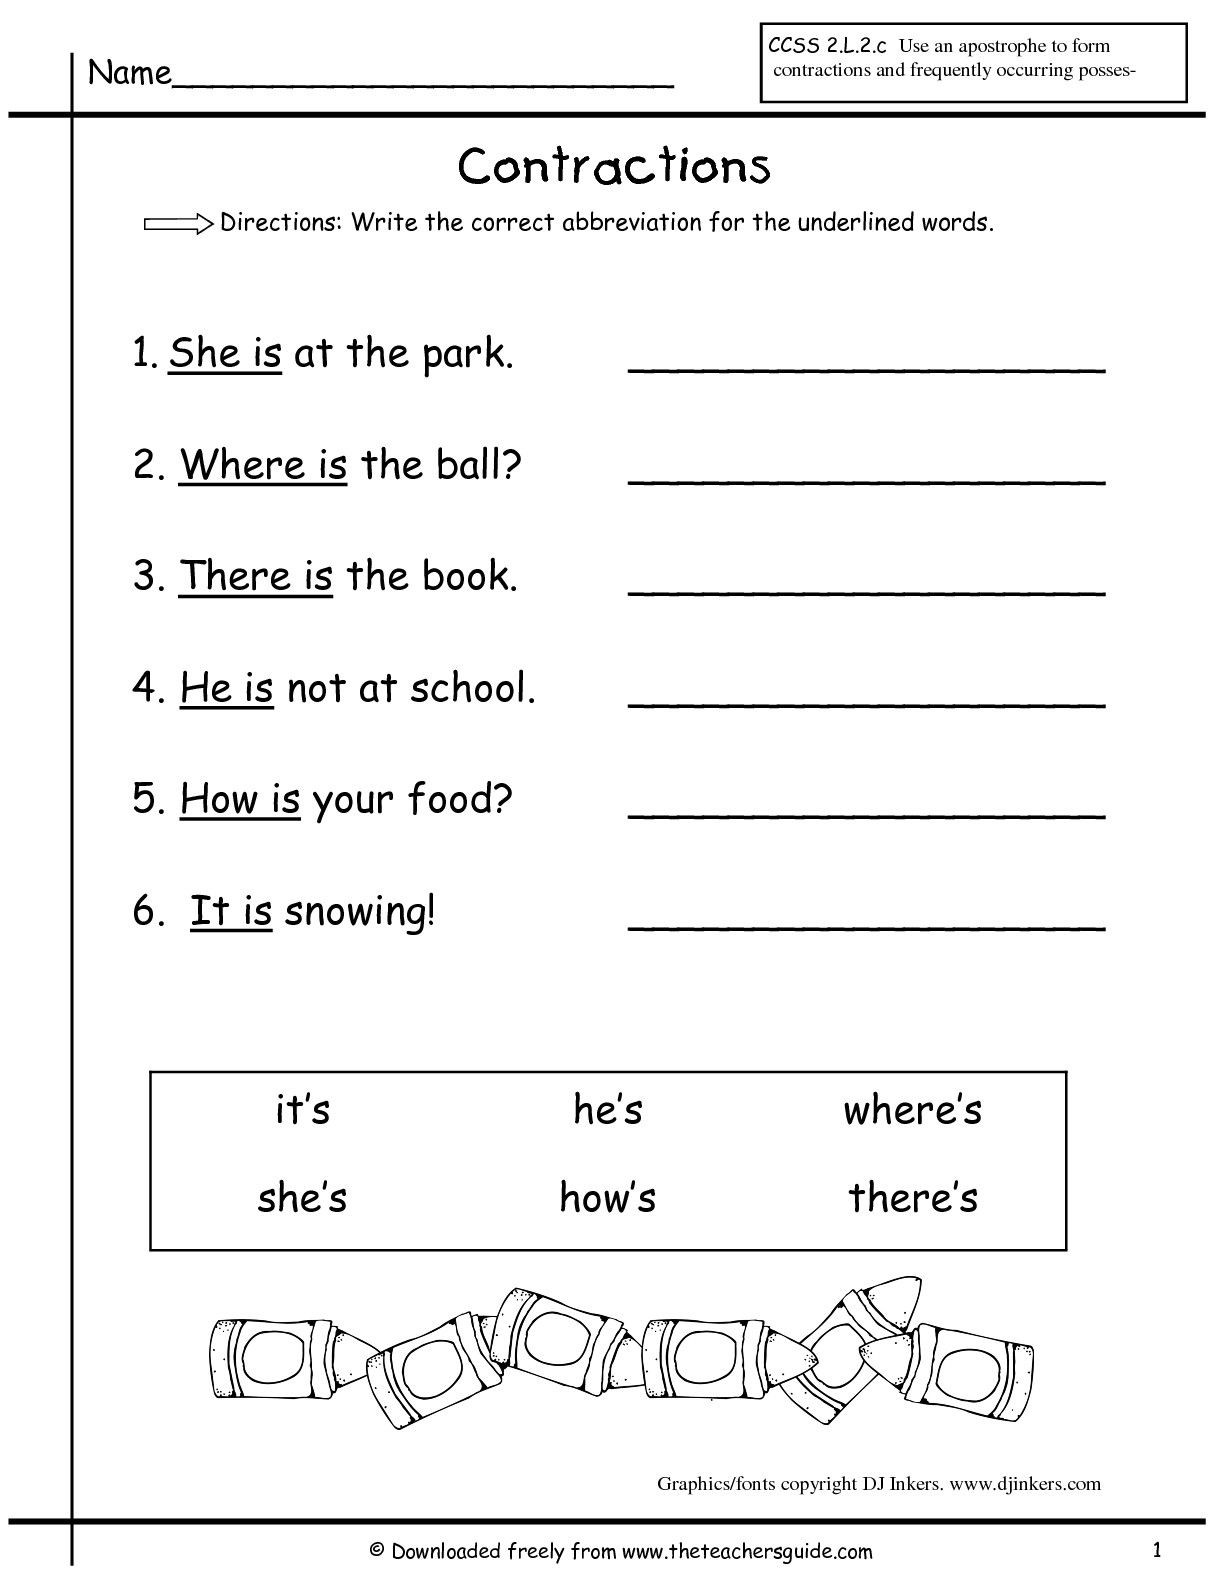 Free 6th Grade Science Worksheets Free Science Worksheets for Grade 2 2nd Grade